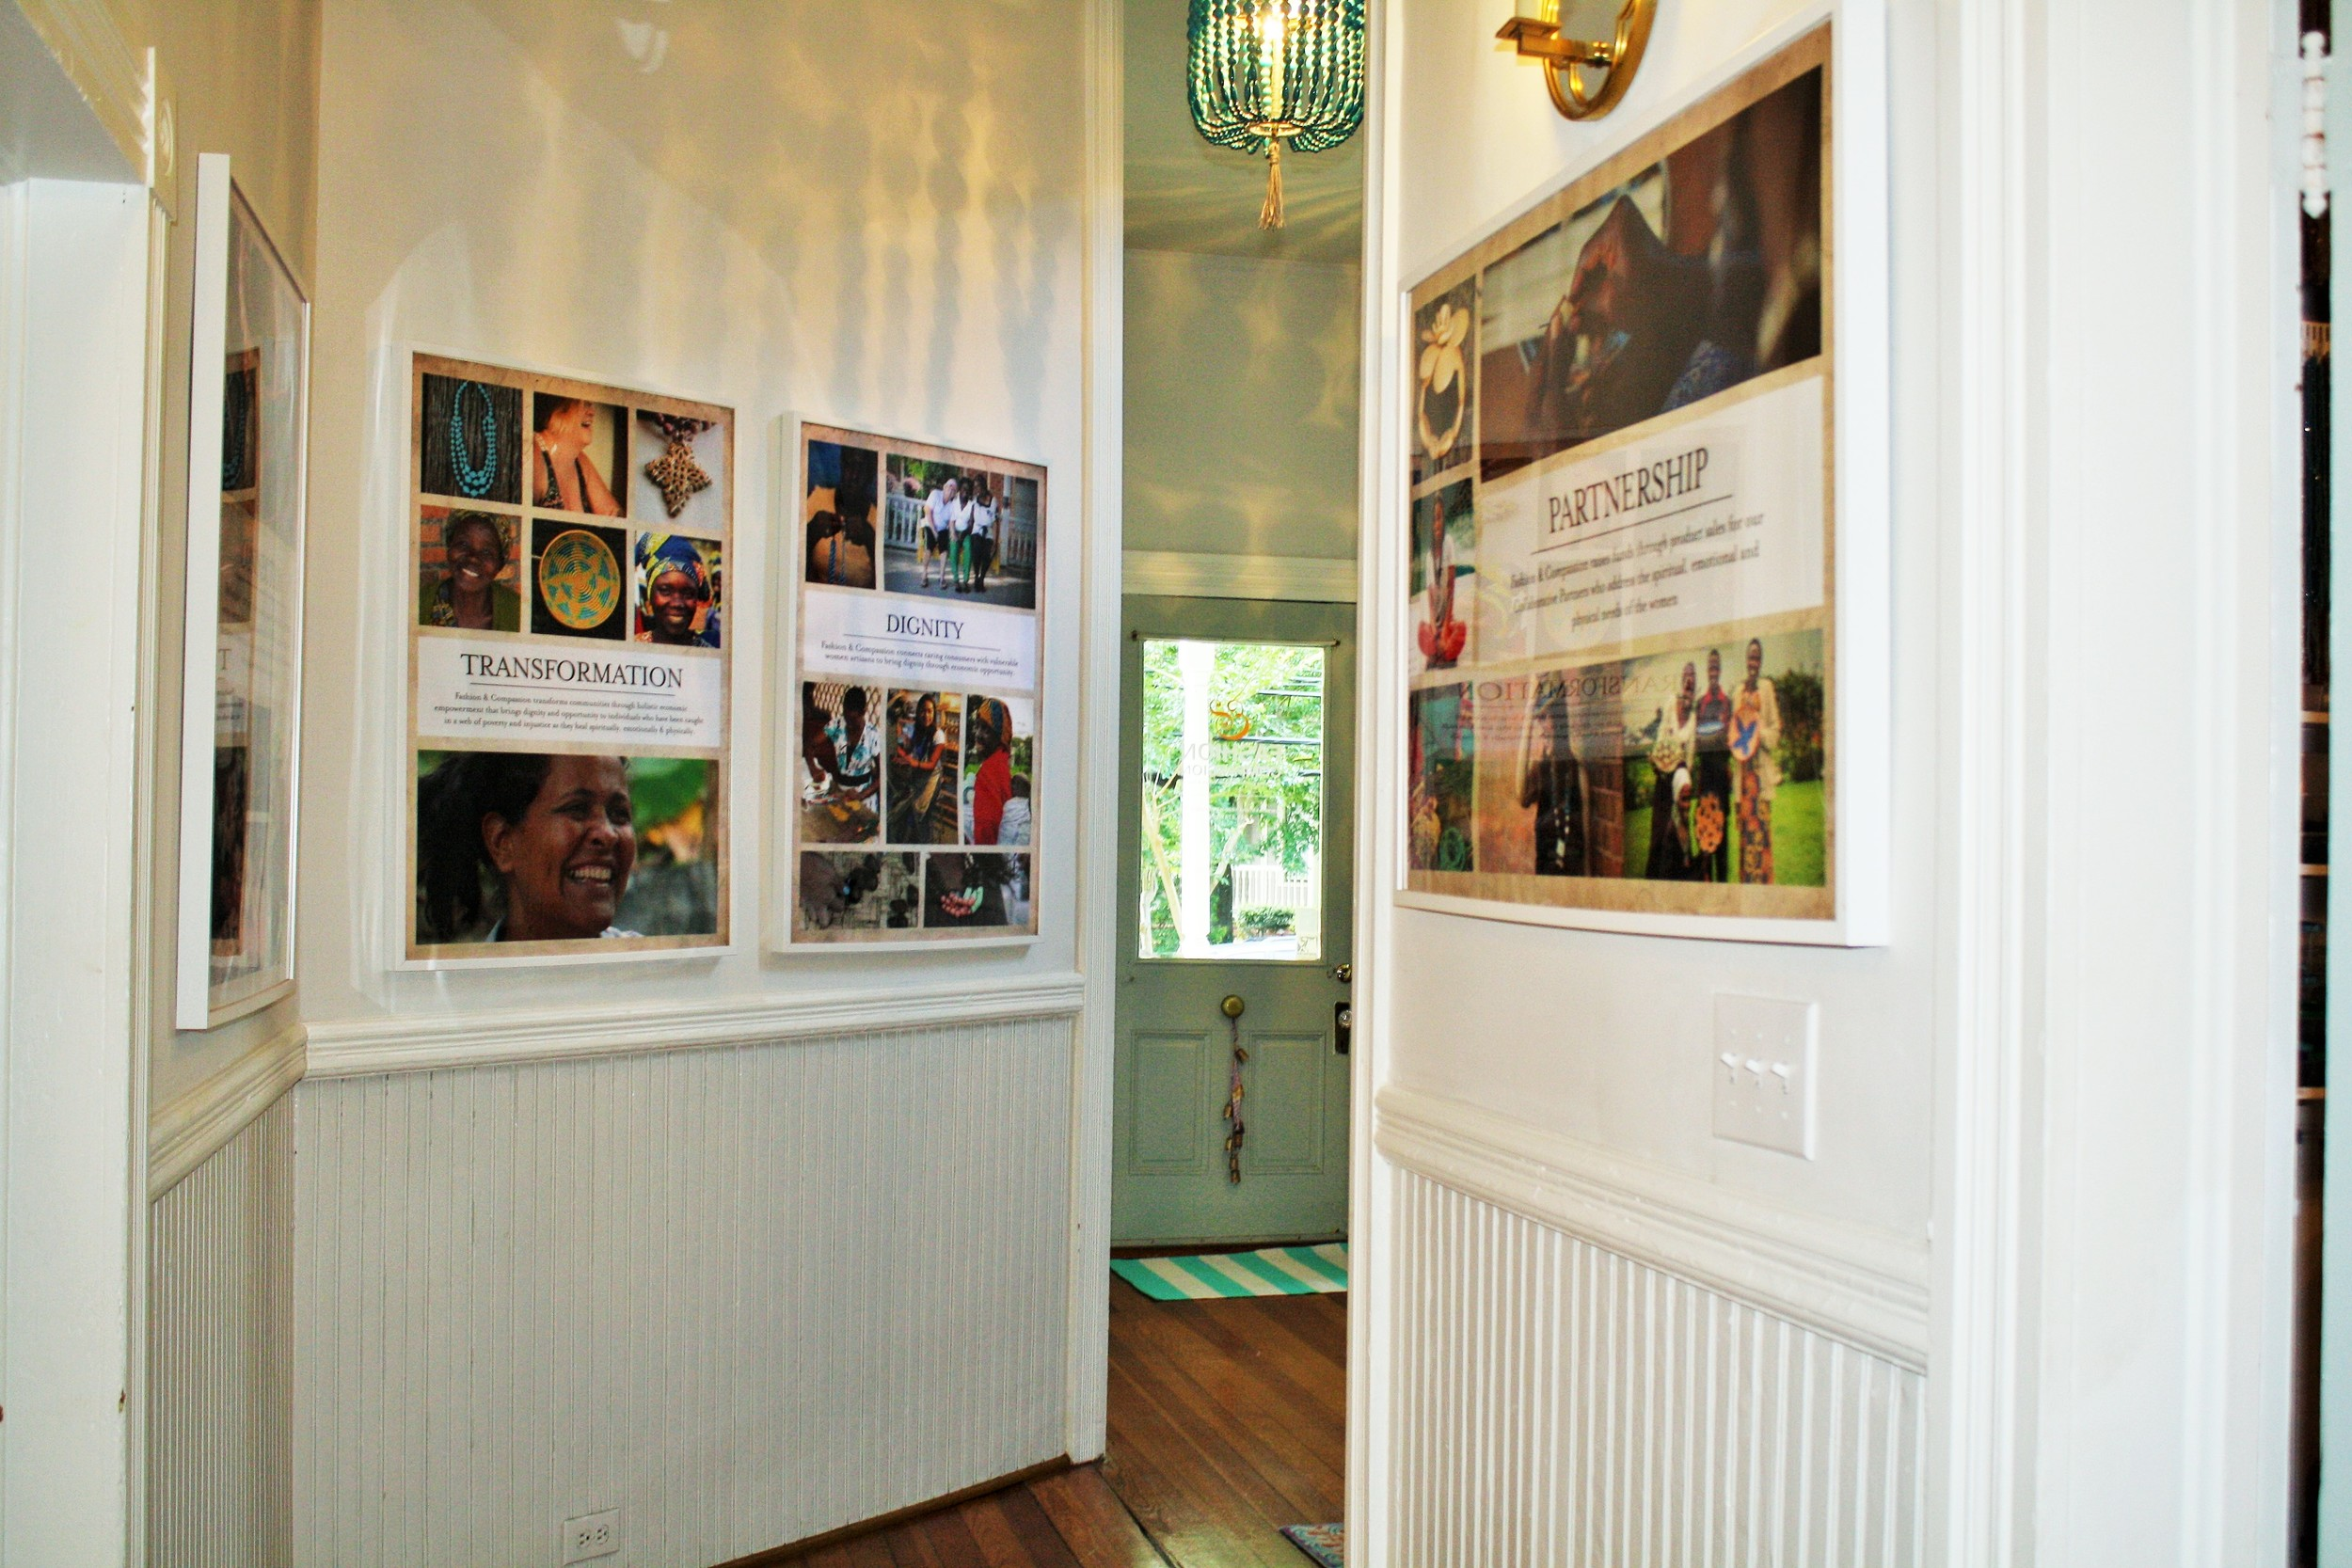 This is the view from the entryway, which features photos of the artisans and the core beliefs of the organization. I love all the details in the house, from the original doorbell to the old wood floors and all the wainscoting. How could you not be creative in a gorgeous place like this?